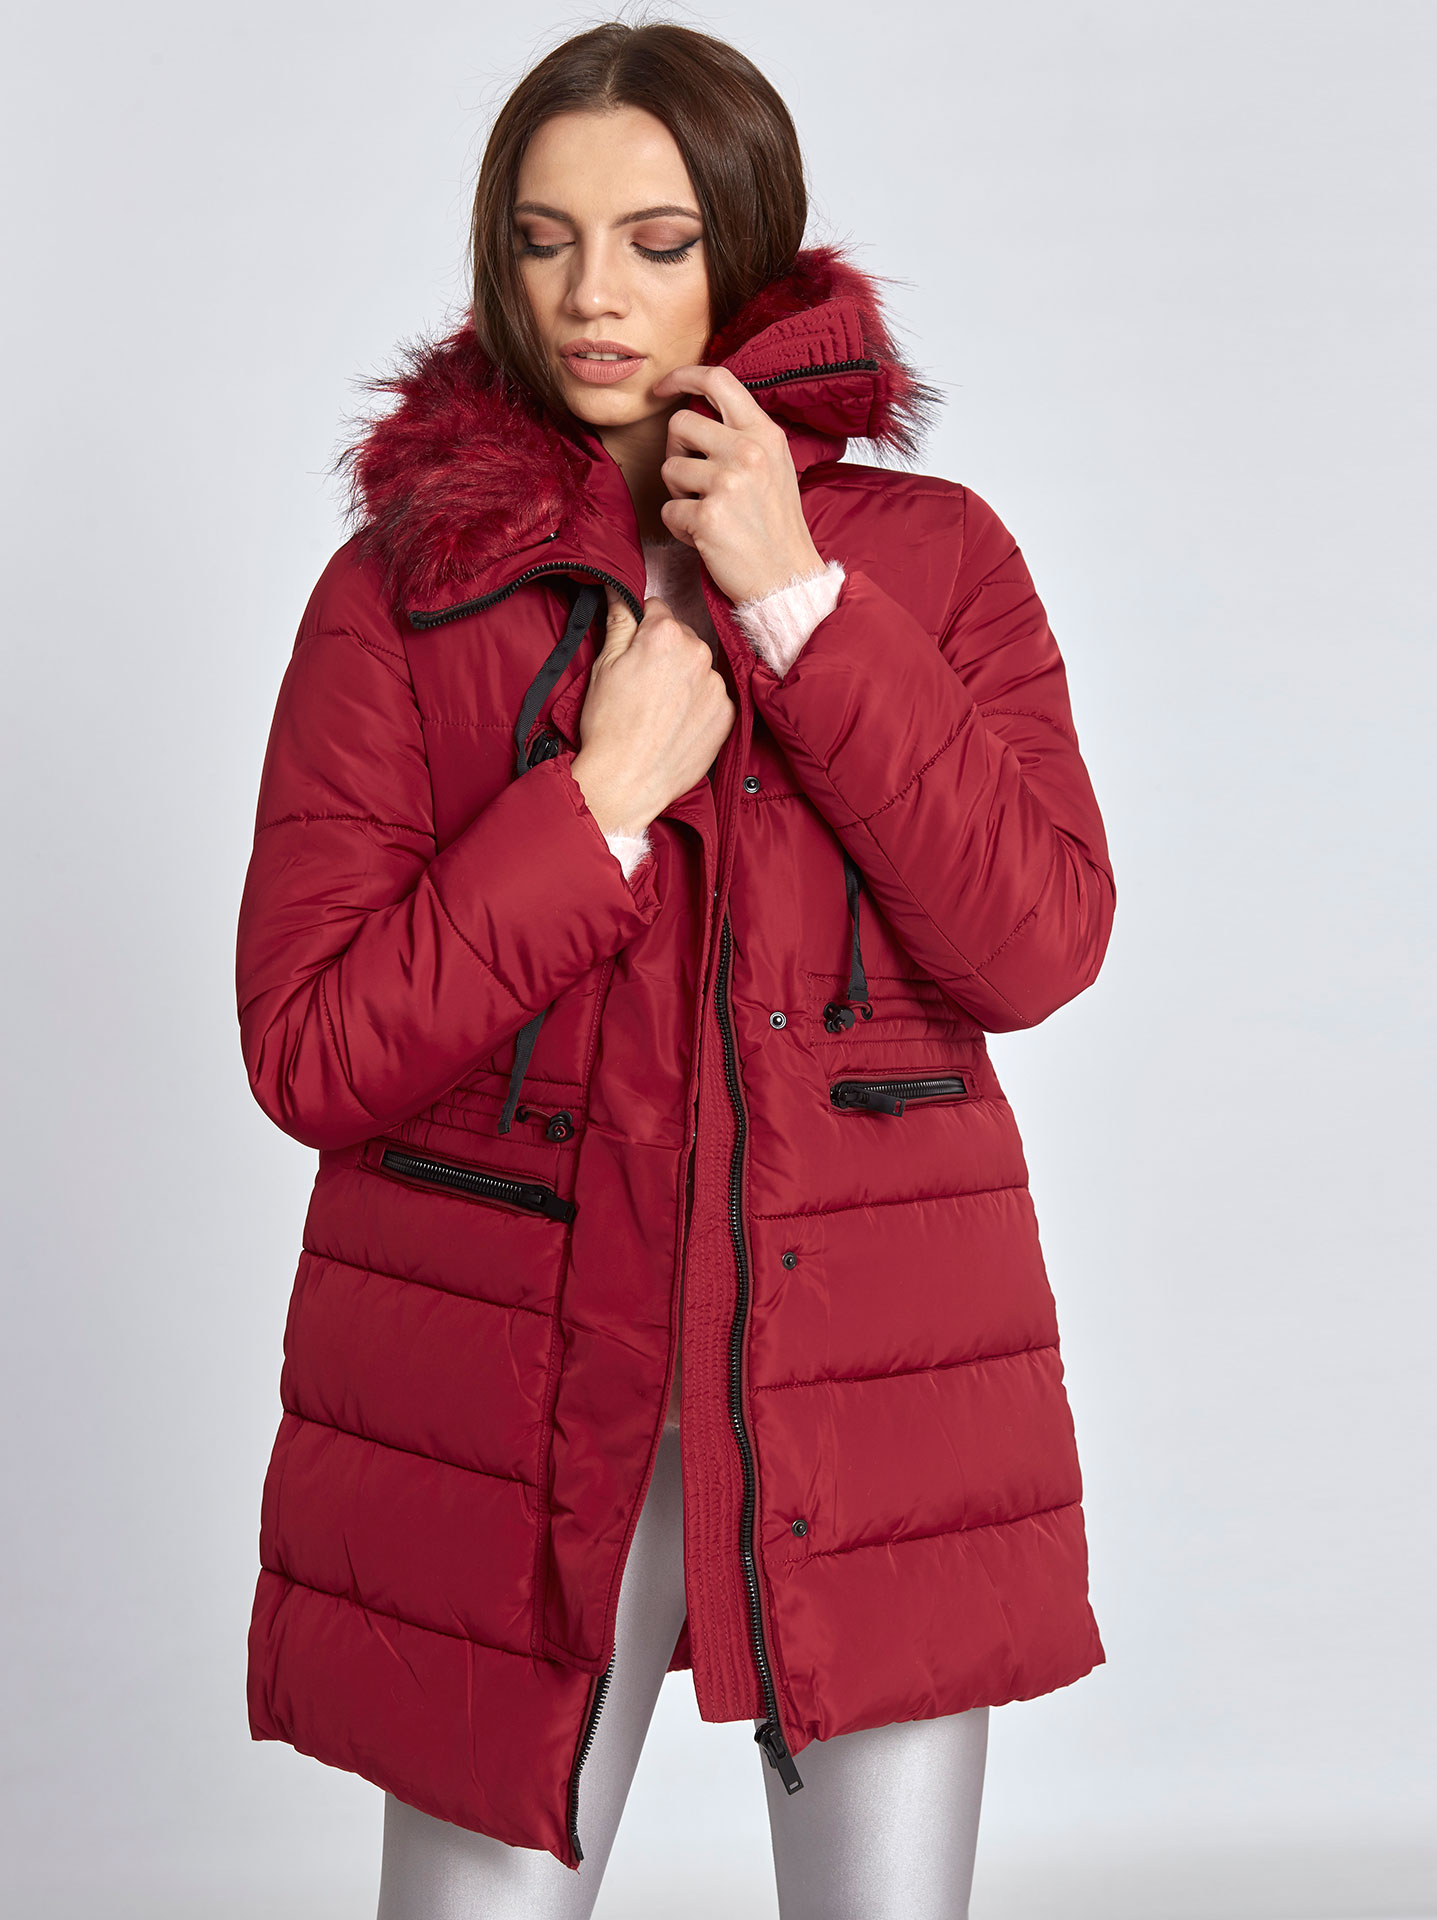 cf96e6059cb9 Hooded puffer coat in wine red, 53.80€ | Celestino